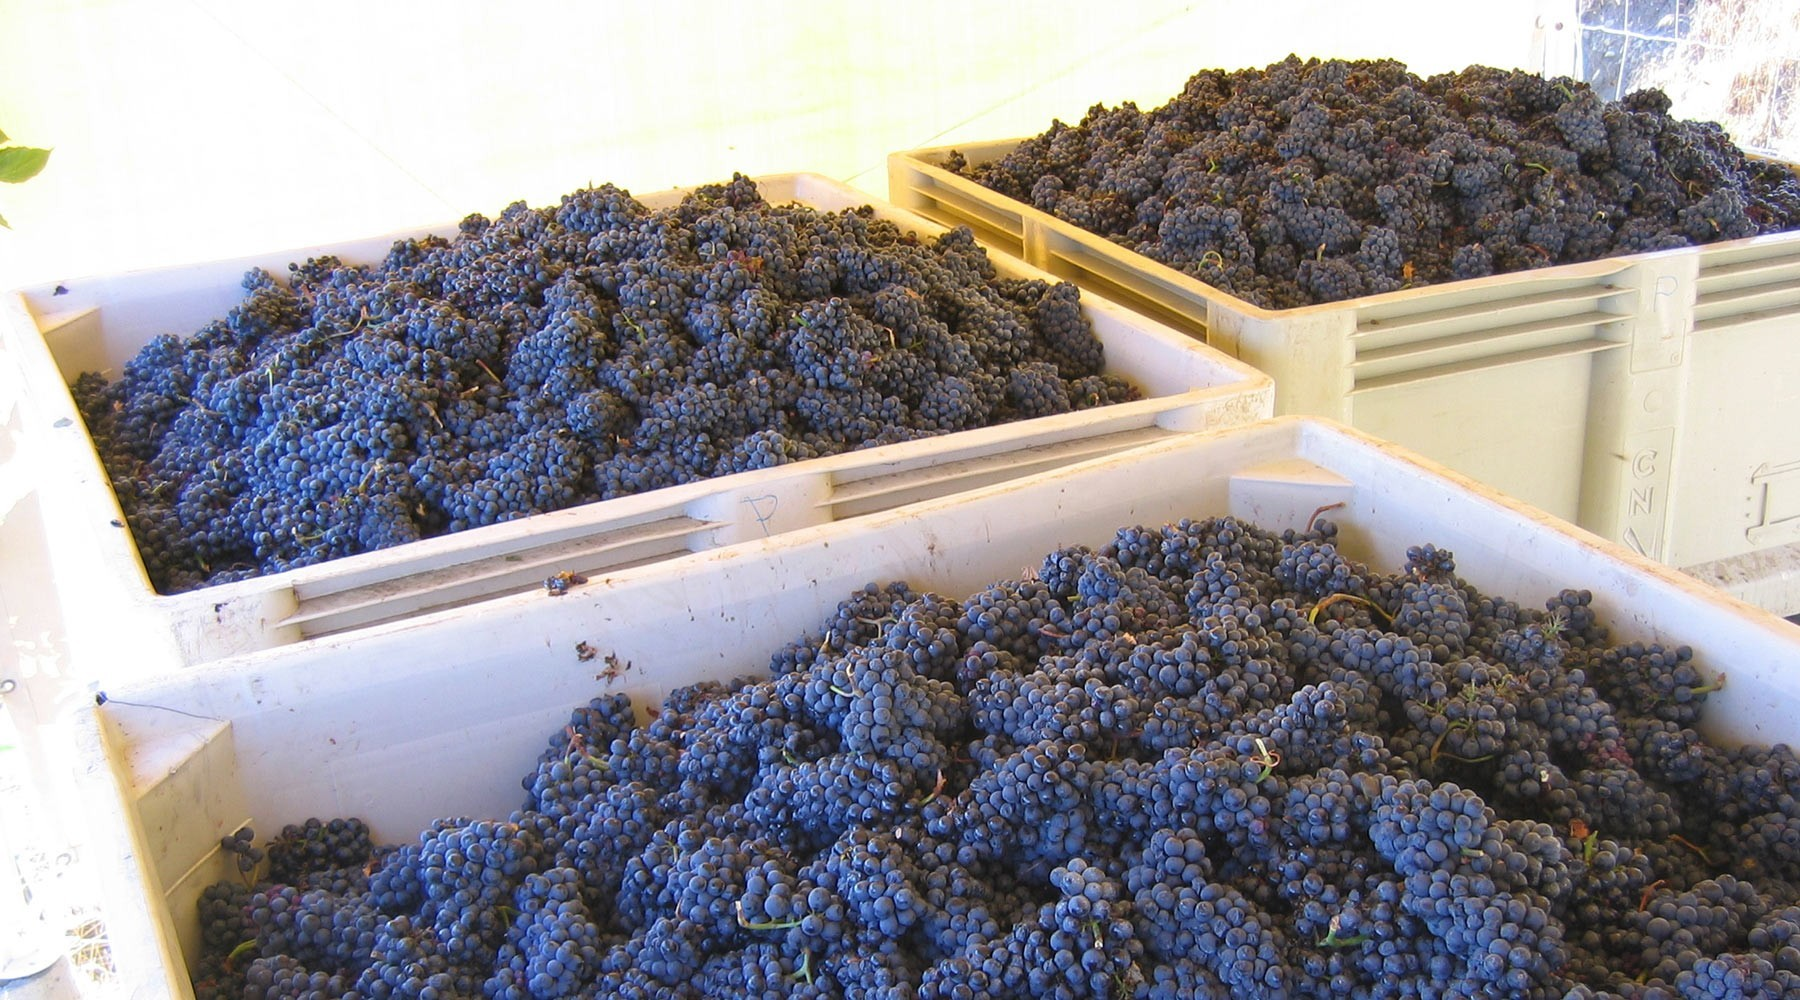 Pinot Noir grapes in bins